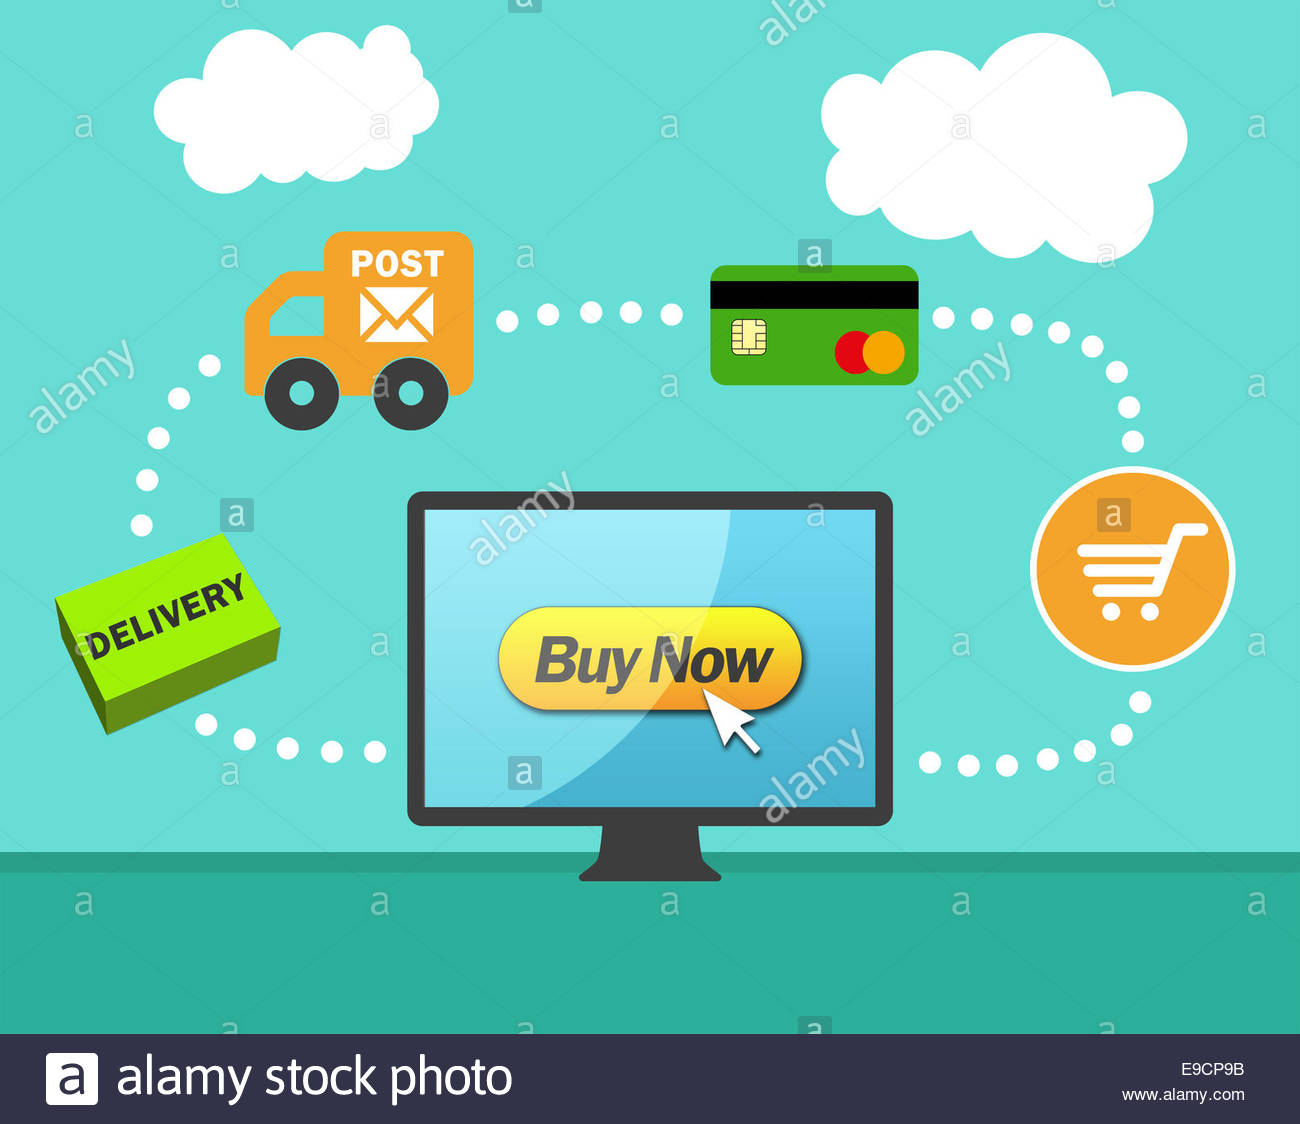 Online shopping order concept - Stock Image